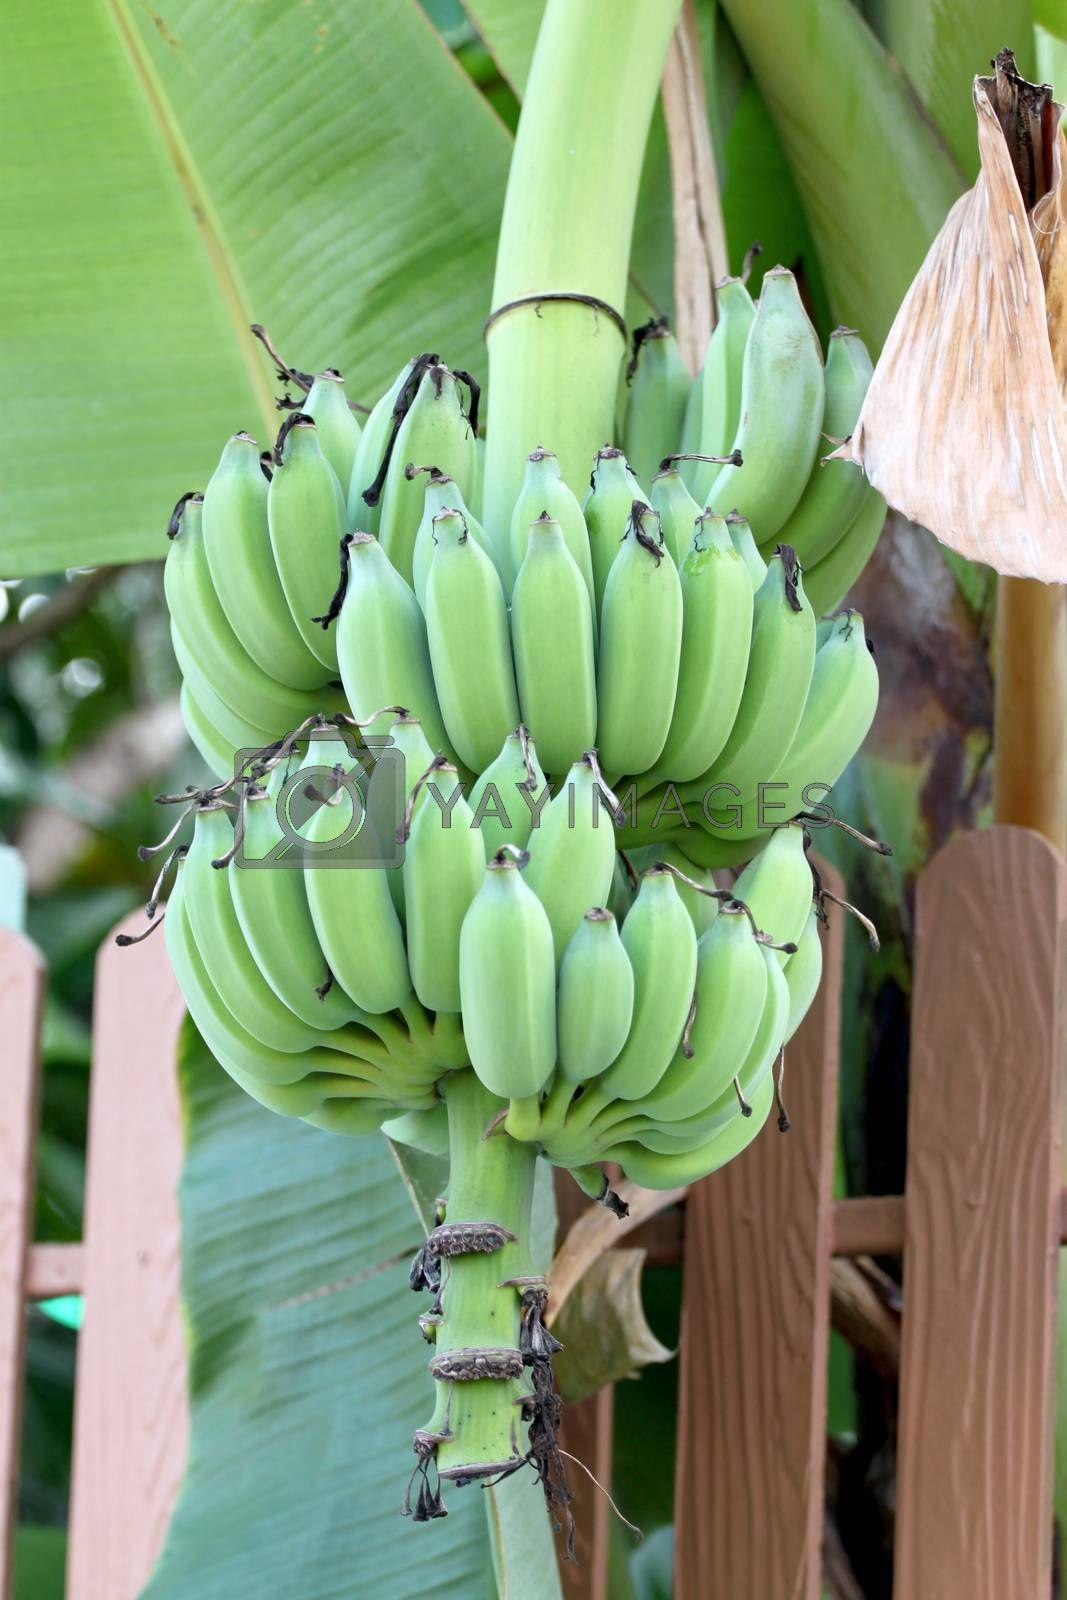 Not yet ripe banana on the side fence home.